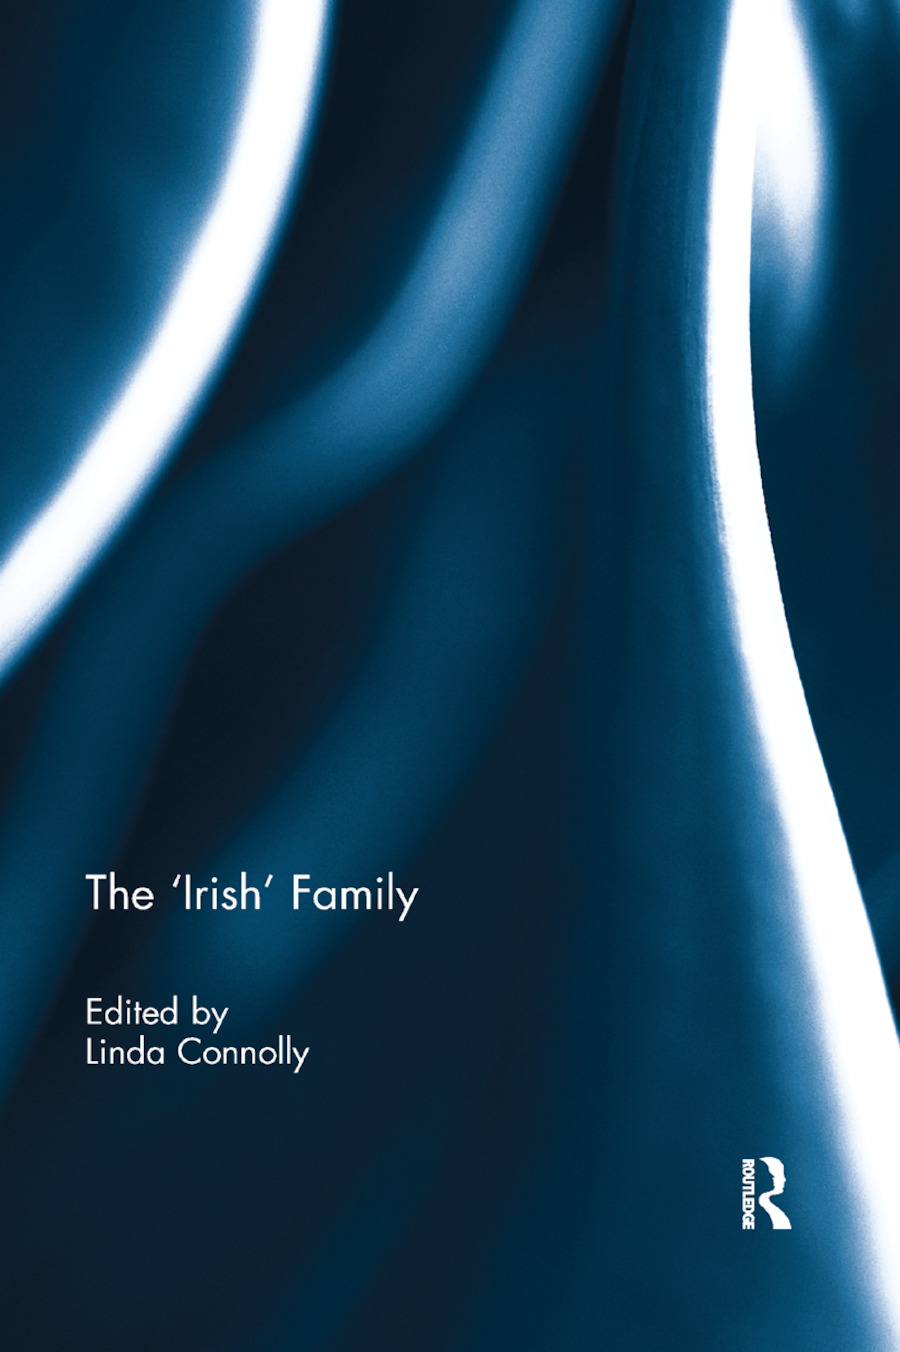 The 'Irish' Family book cover